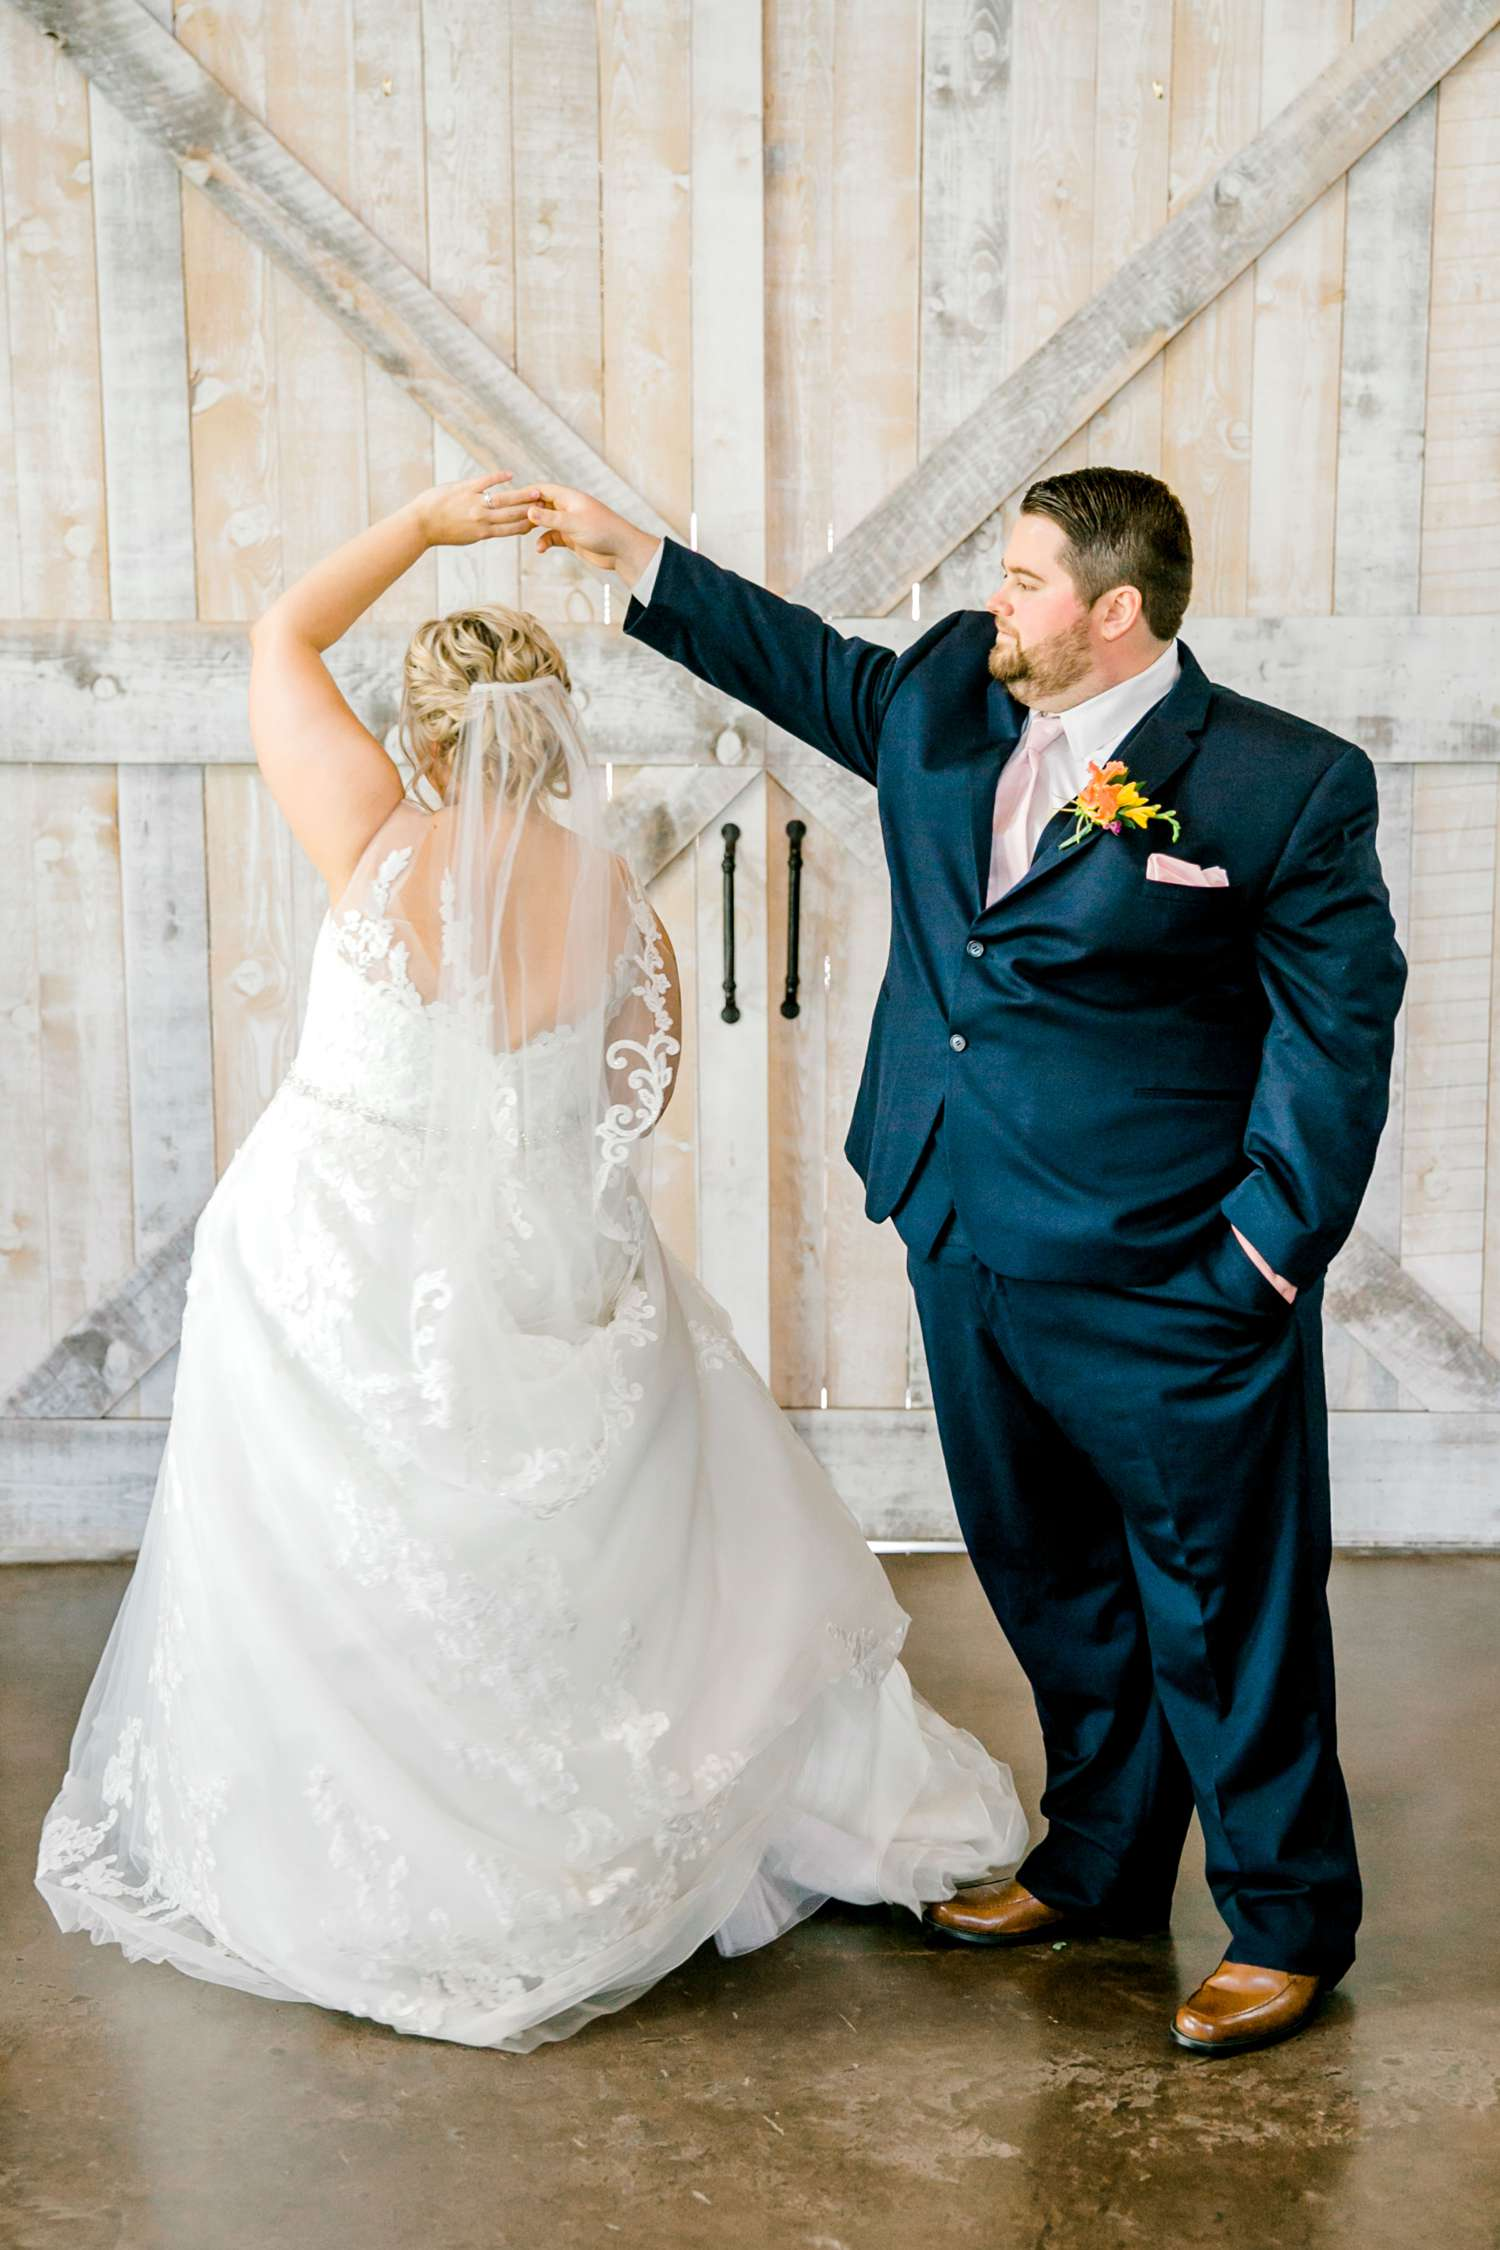 TIMMI+JORDAN_IRVINE_EBERLEY_BROOKS_EVENTS_ALLEEJ_WEDDINGS_0026.jpg